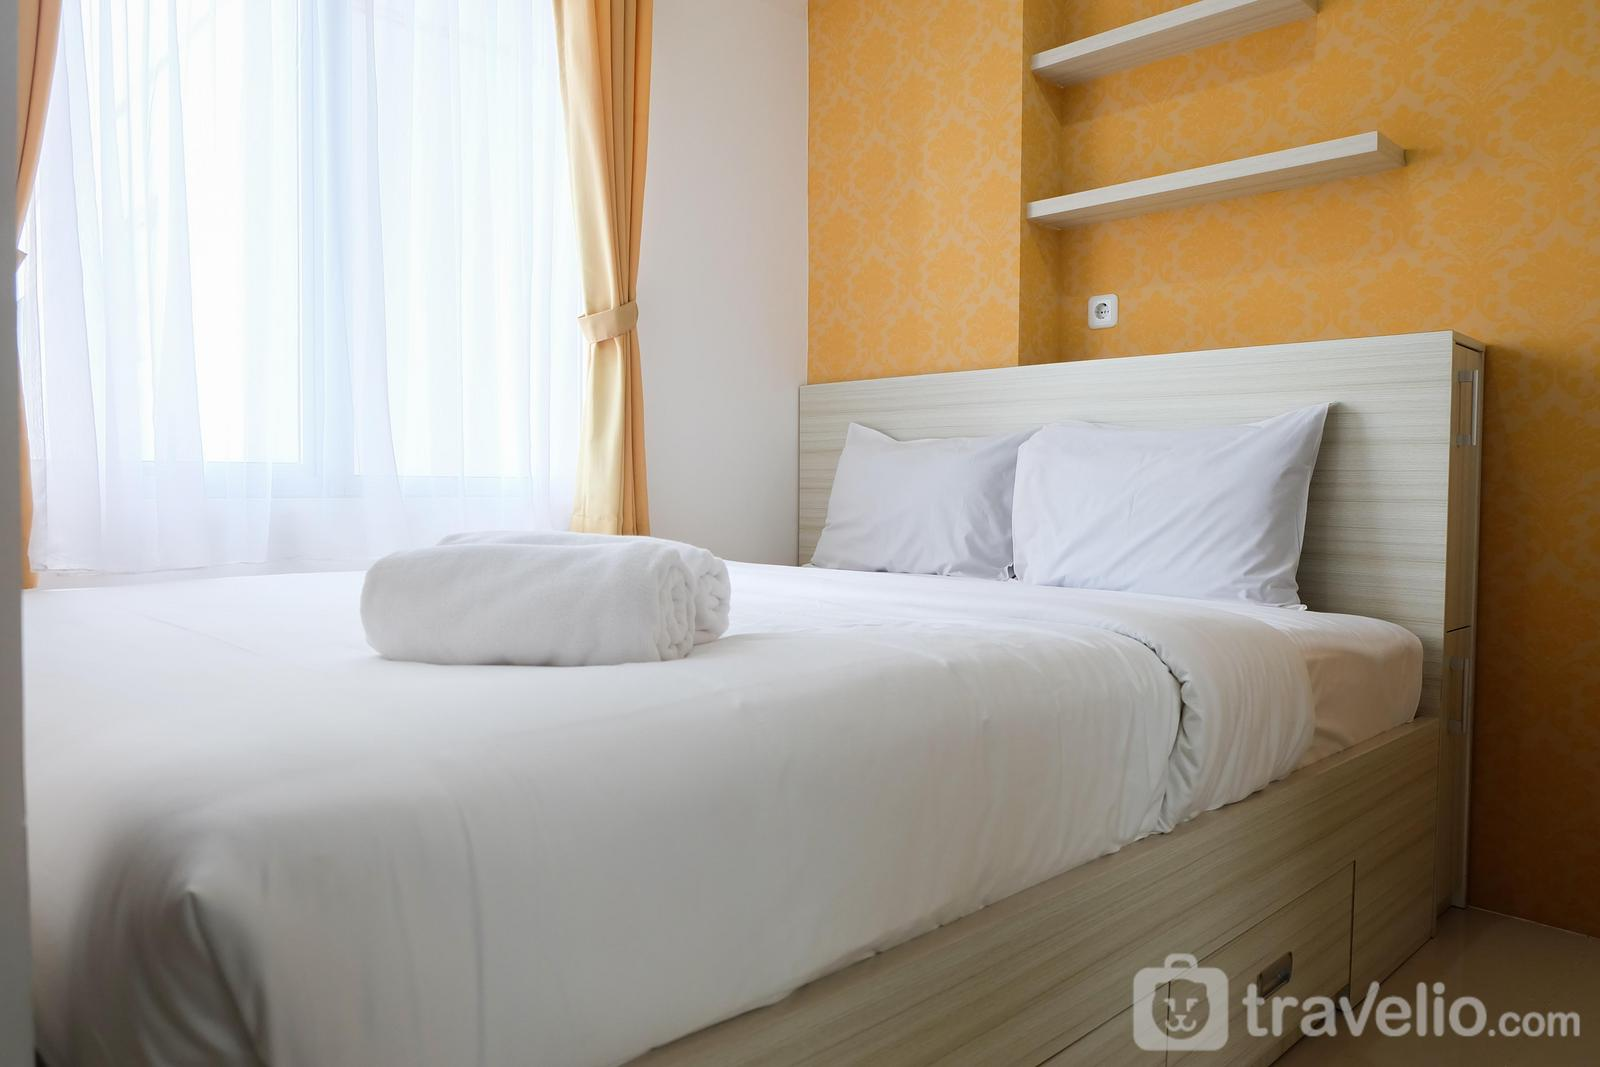 Bassura City Cipinang - Strategic and Cozy 2BR Bassura City Apartment By Travelio